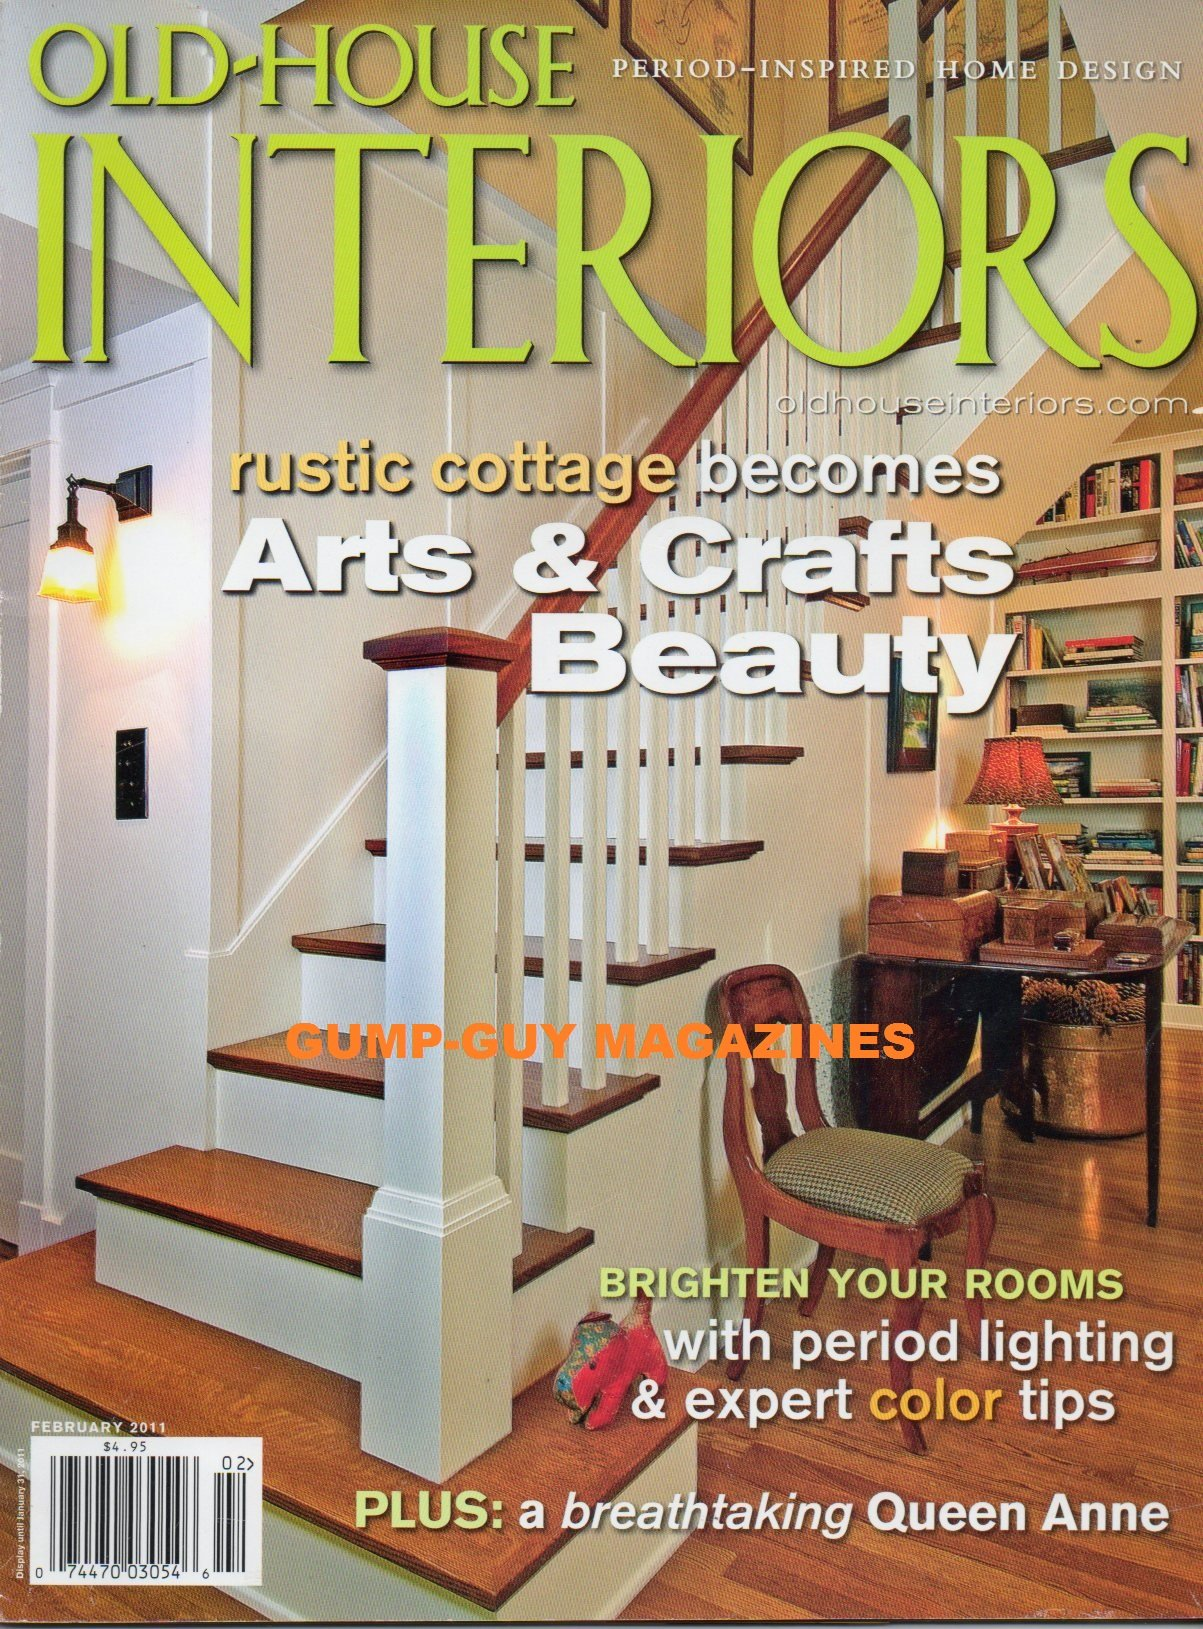 Download OLD HOUSE INTERIORS February 2011 Magazine PERIOD-INSPIRED HOME DESIGN A Breathtaking Queen Anne RUSTIC COTTAGE BECOMES ARTS & CRAFTS BEAUTY Brighten Your Rooms With Period Lighting ebook